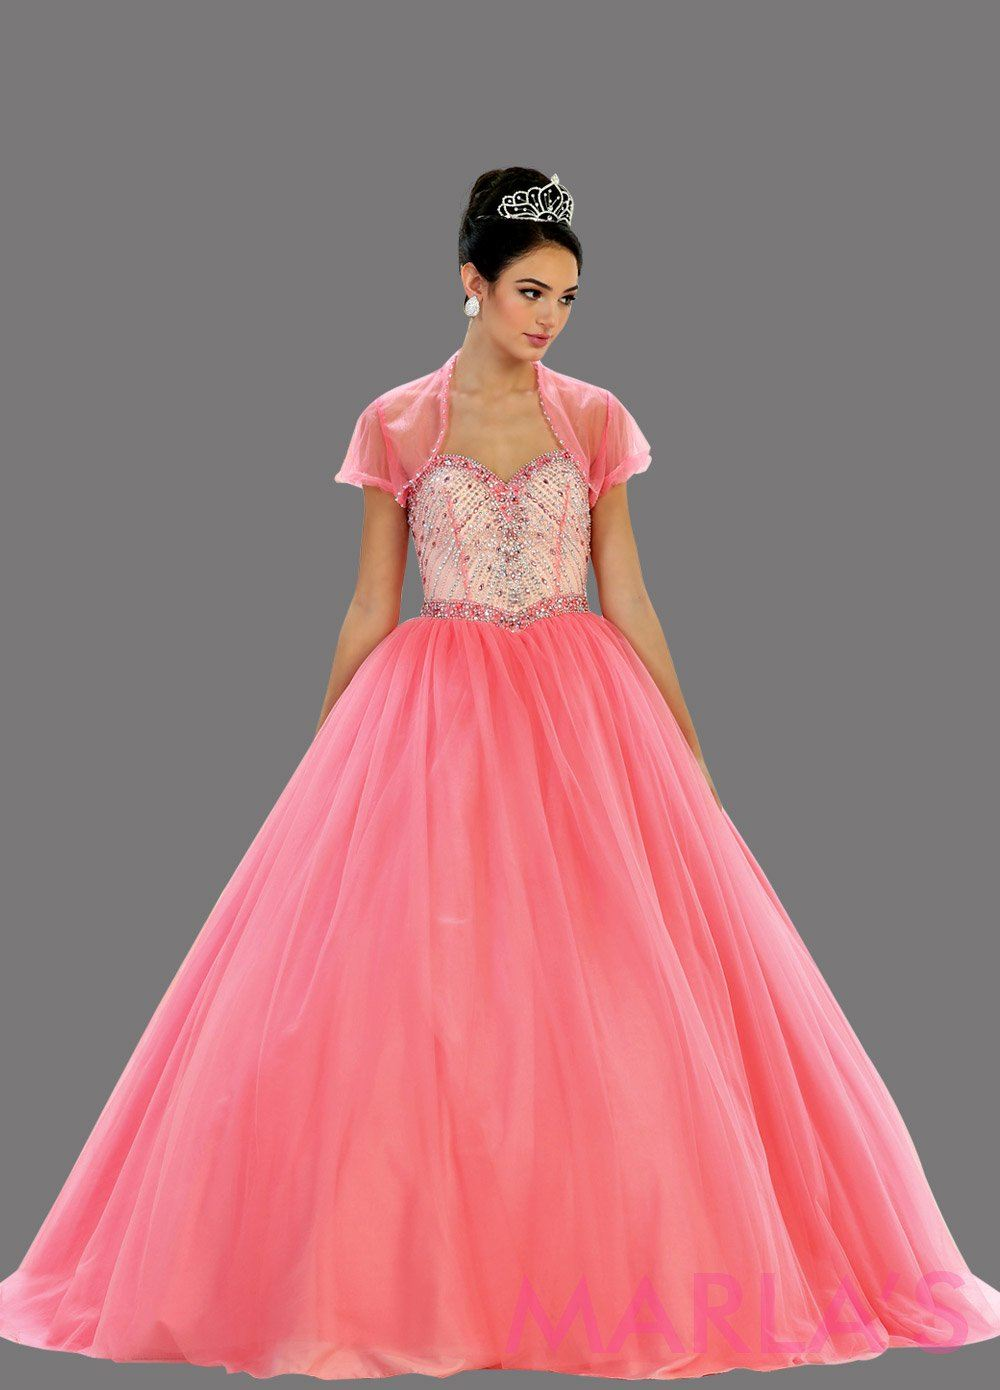 Long fuchsia strapless princess quinceanera ball gown with rhinestone beading. Perfect hot pink dress for Engagement dress, Quinceanera, Sweet 16, Sweet 15 and pink Wedding Reception Dress. Available in plus